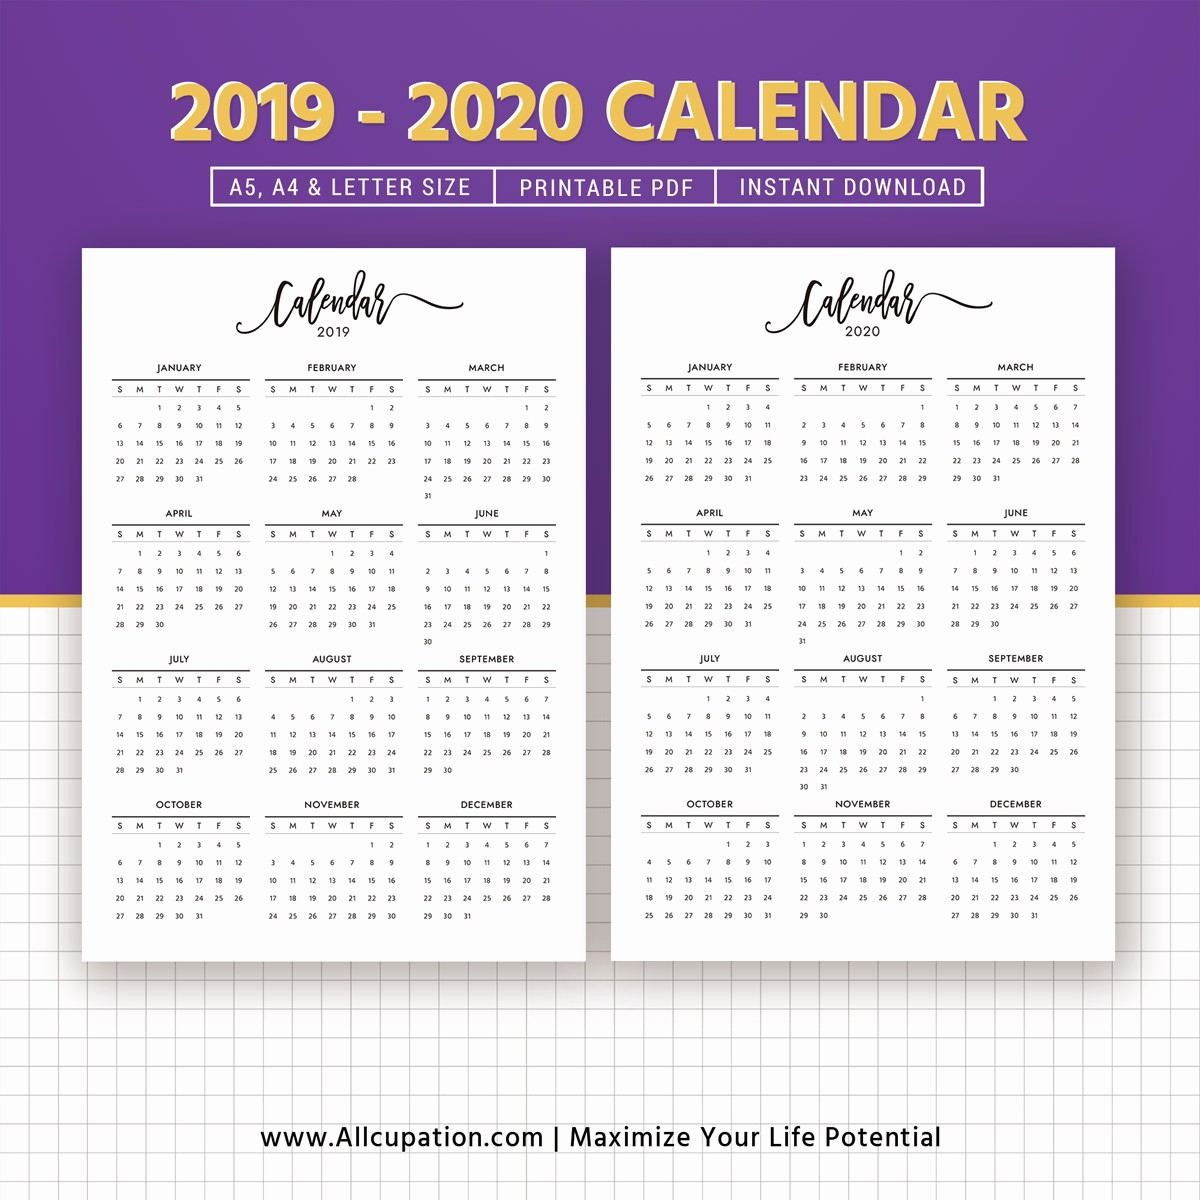 2019 and 2020 Calendar Printable New 2019 2020 Calendar Printable Calendar Planner Design